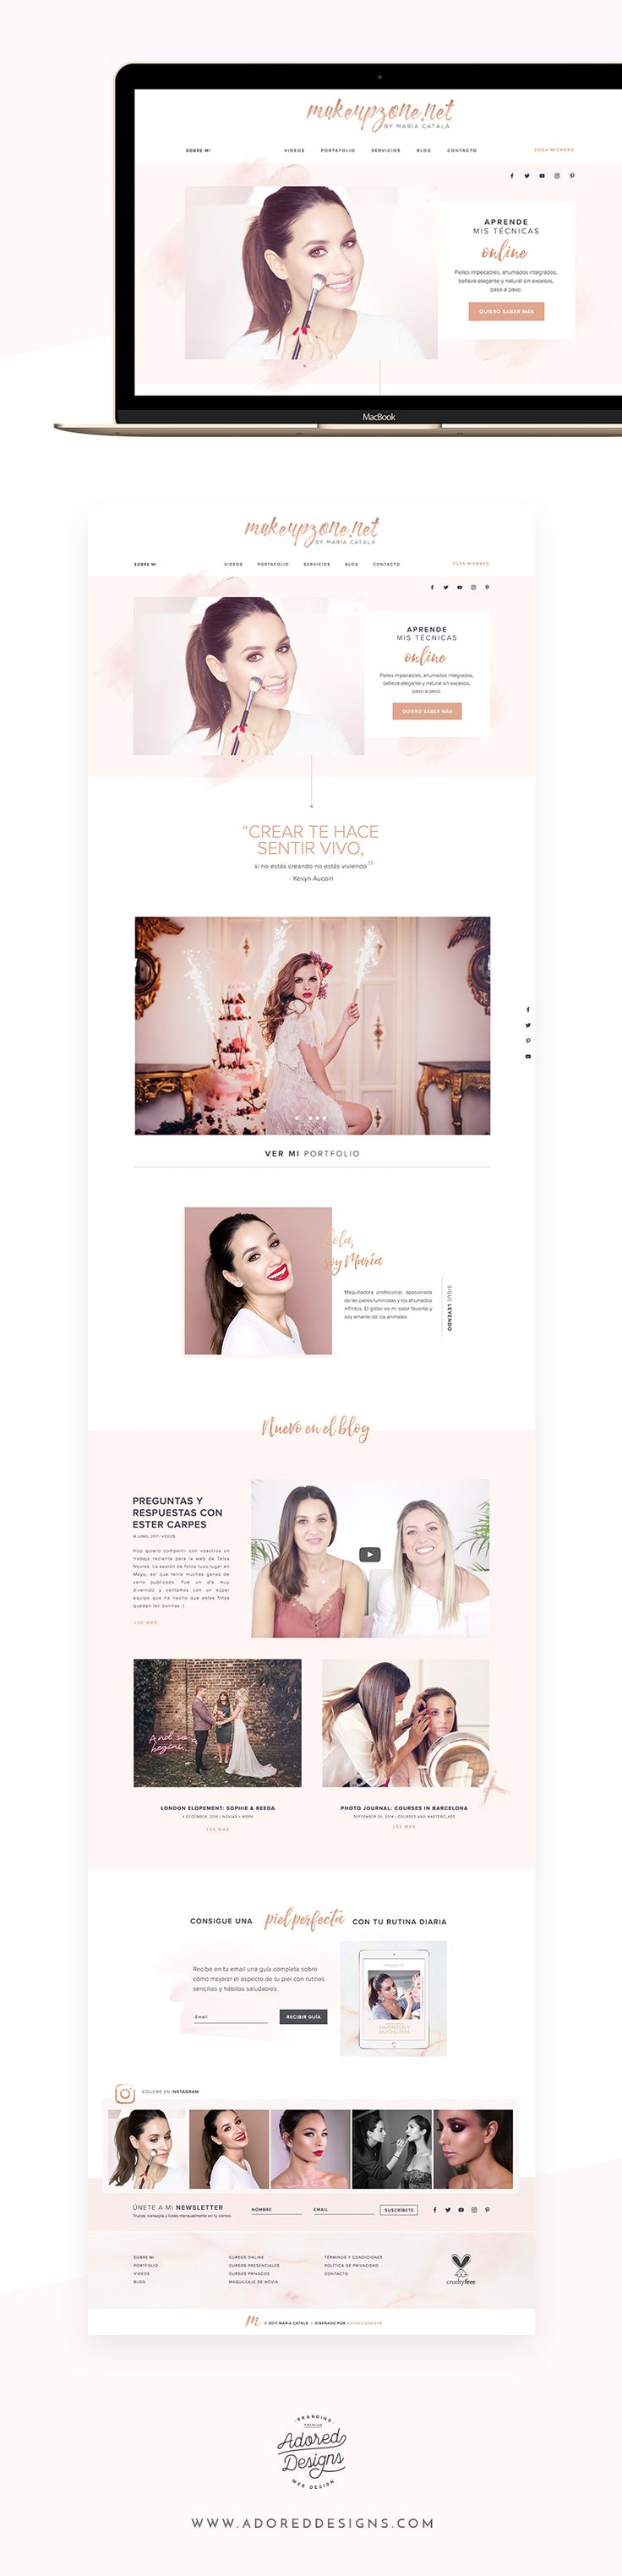 Website for Makeupzone - professional makeup artist María Catala based in Alicante, Spain. Membership site, online courses & blog. See the whole case study!